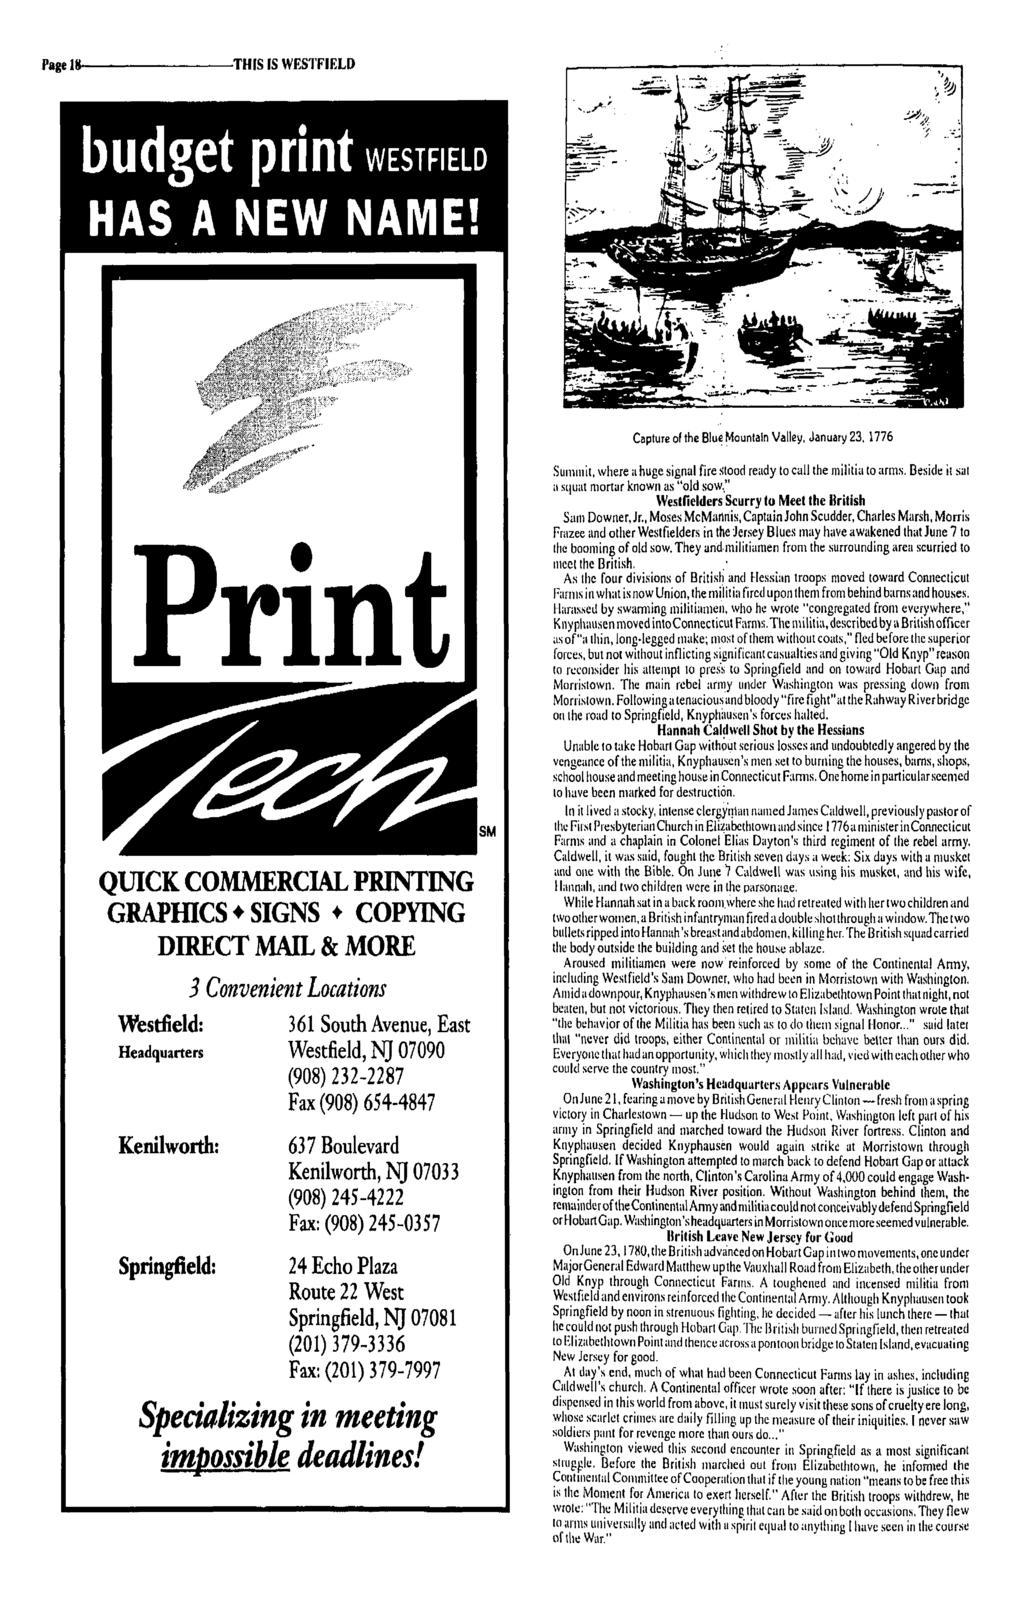 2aeeb435cce40 Page lft  -THIS IS WESTFIELD budget print WESTFIELC HAS A NEW NAME!